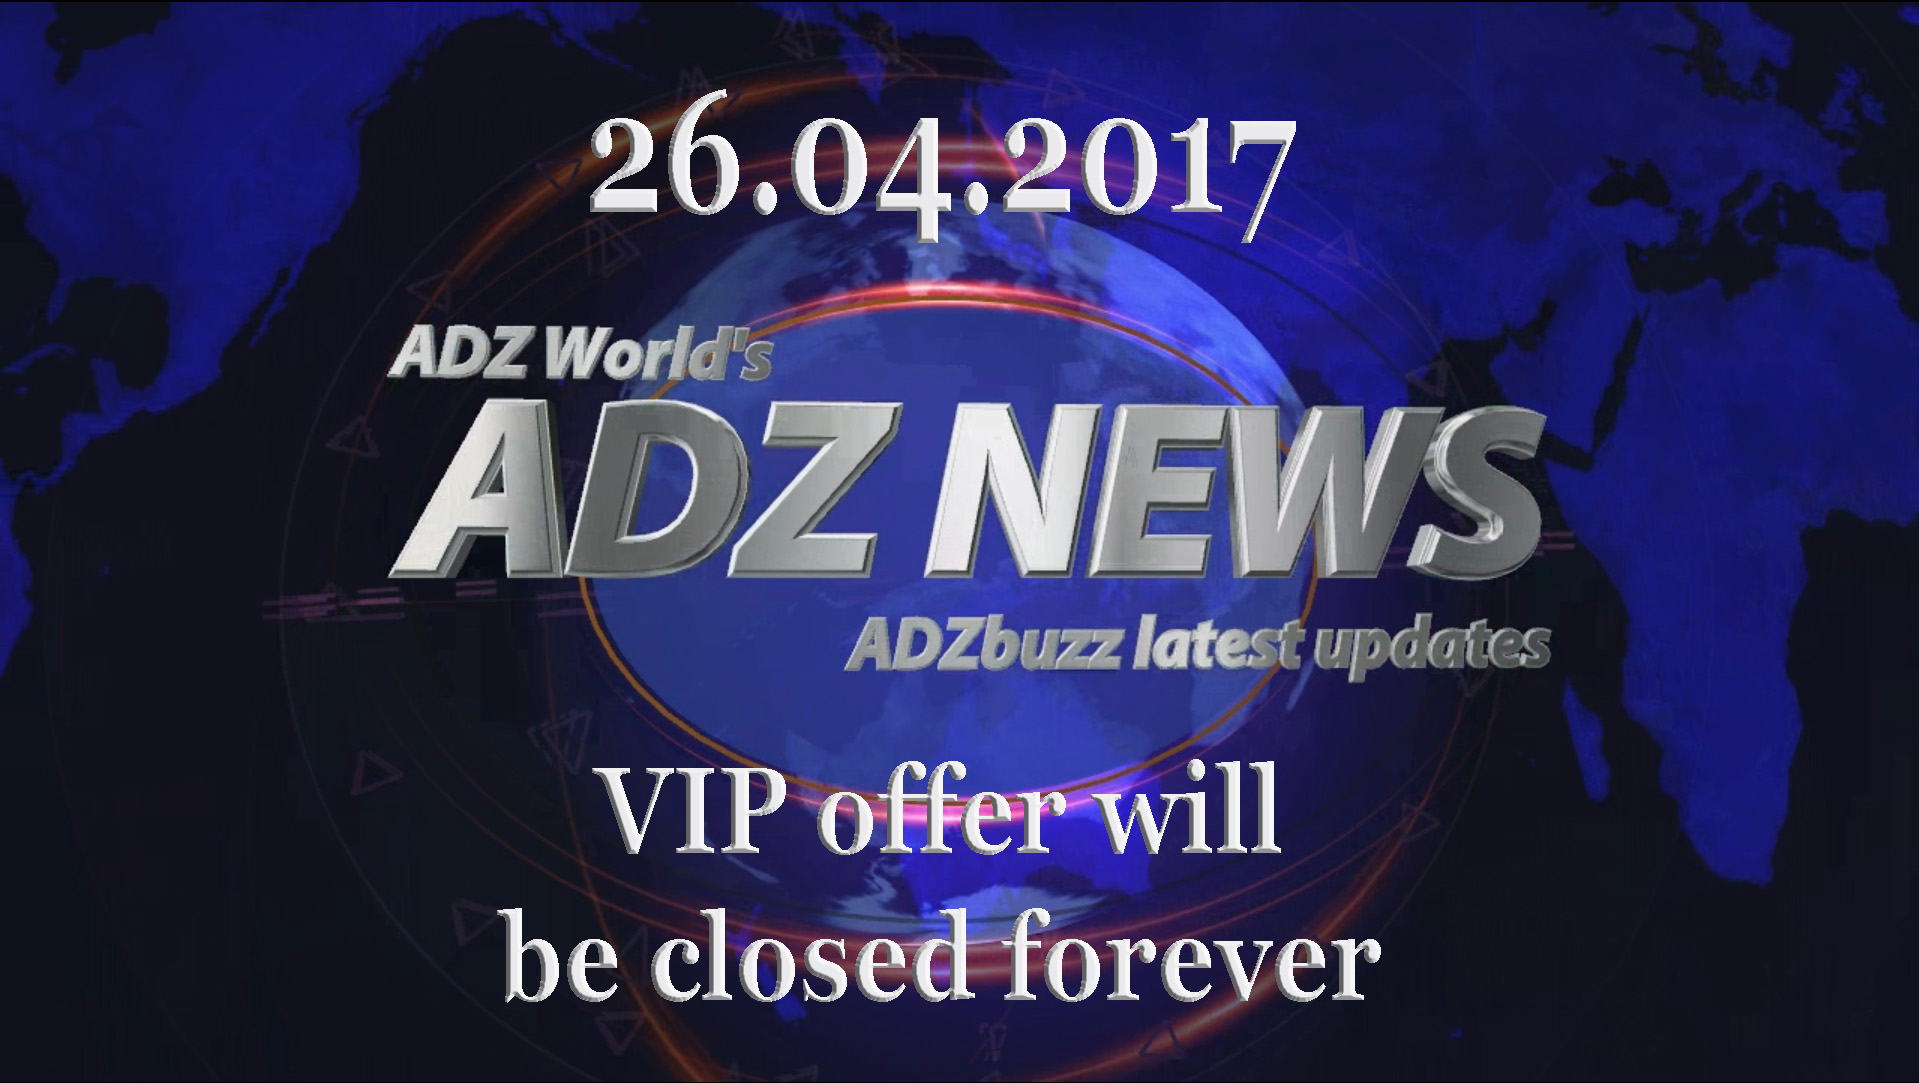 ADZ News 26.04.2017 – VIP Offer, is it worth it?